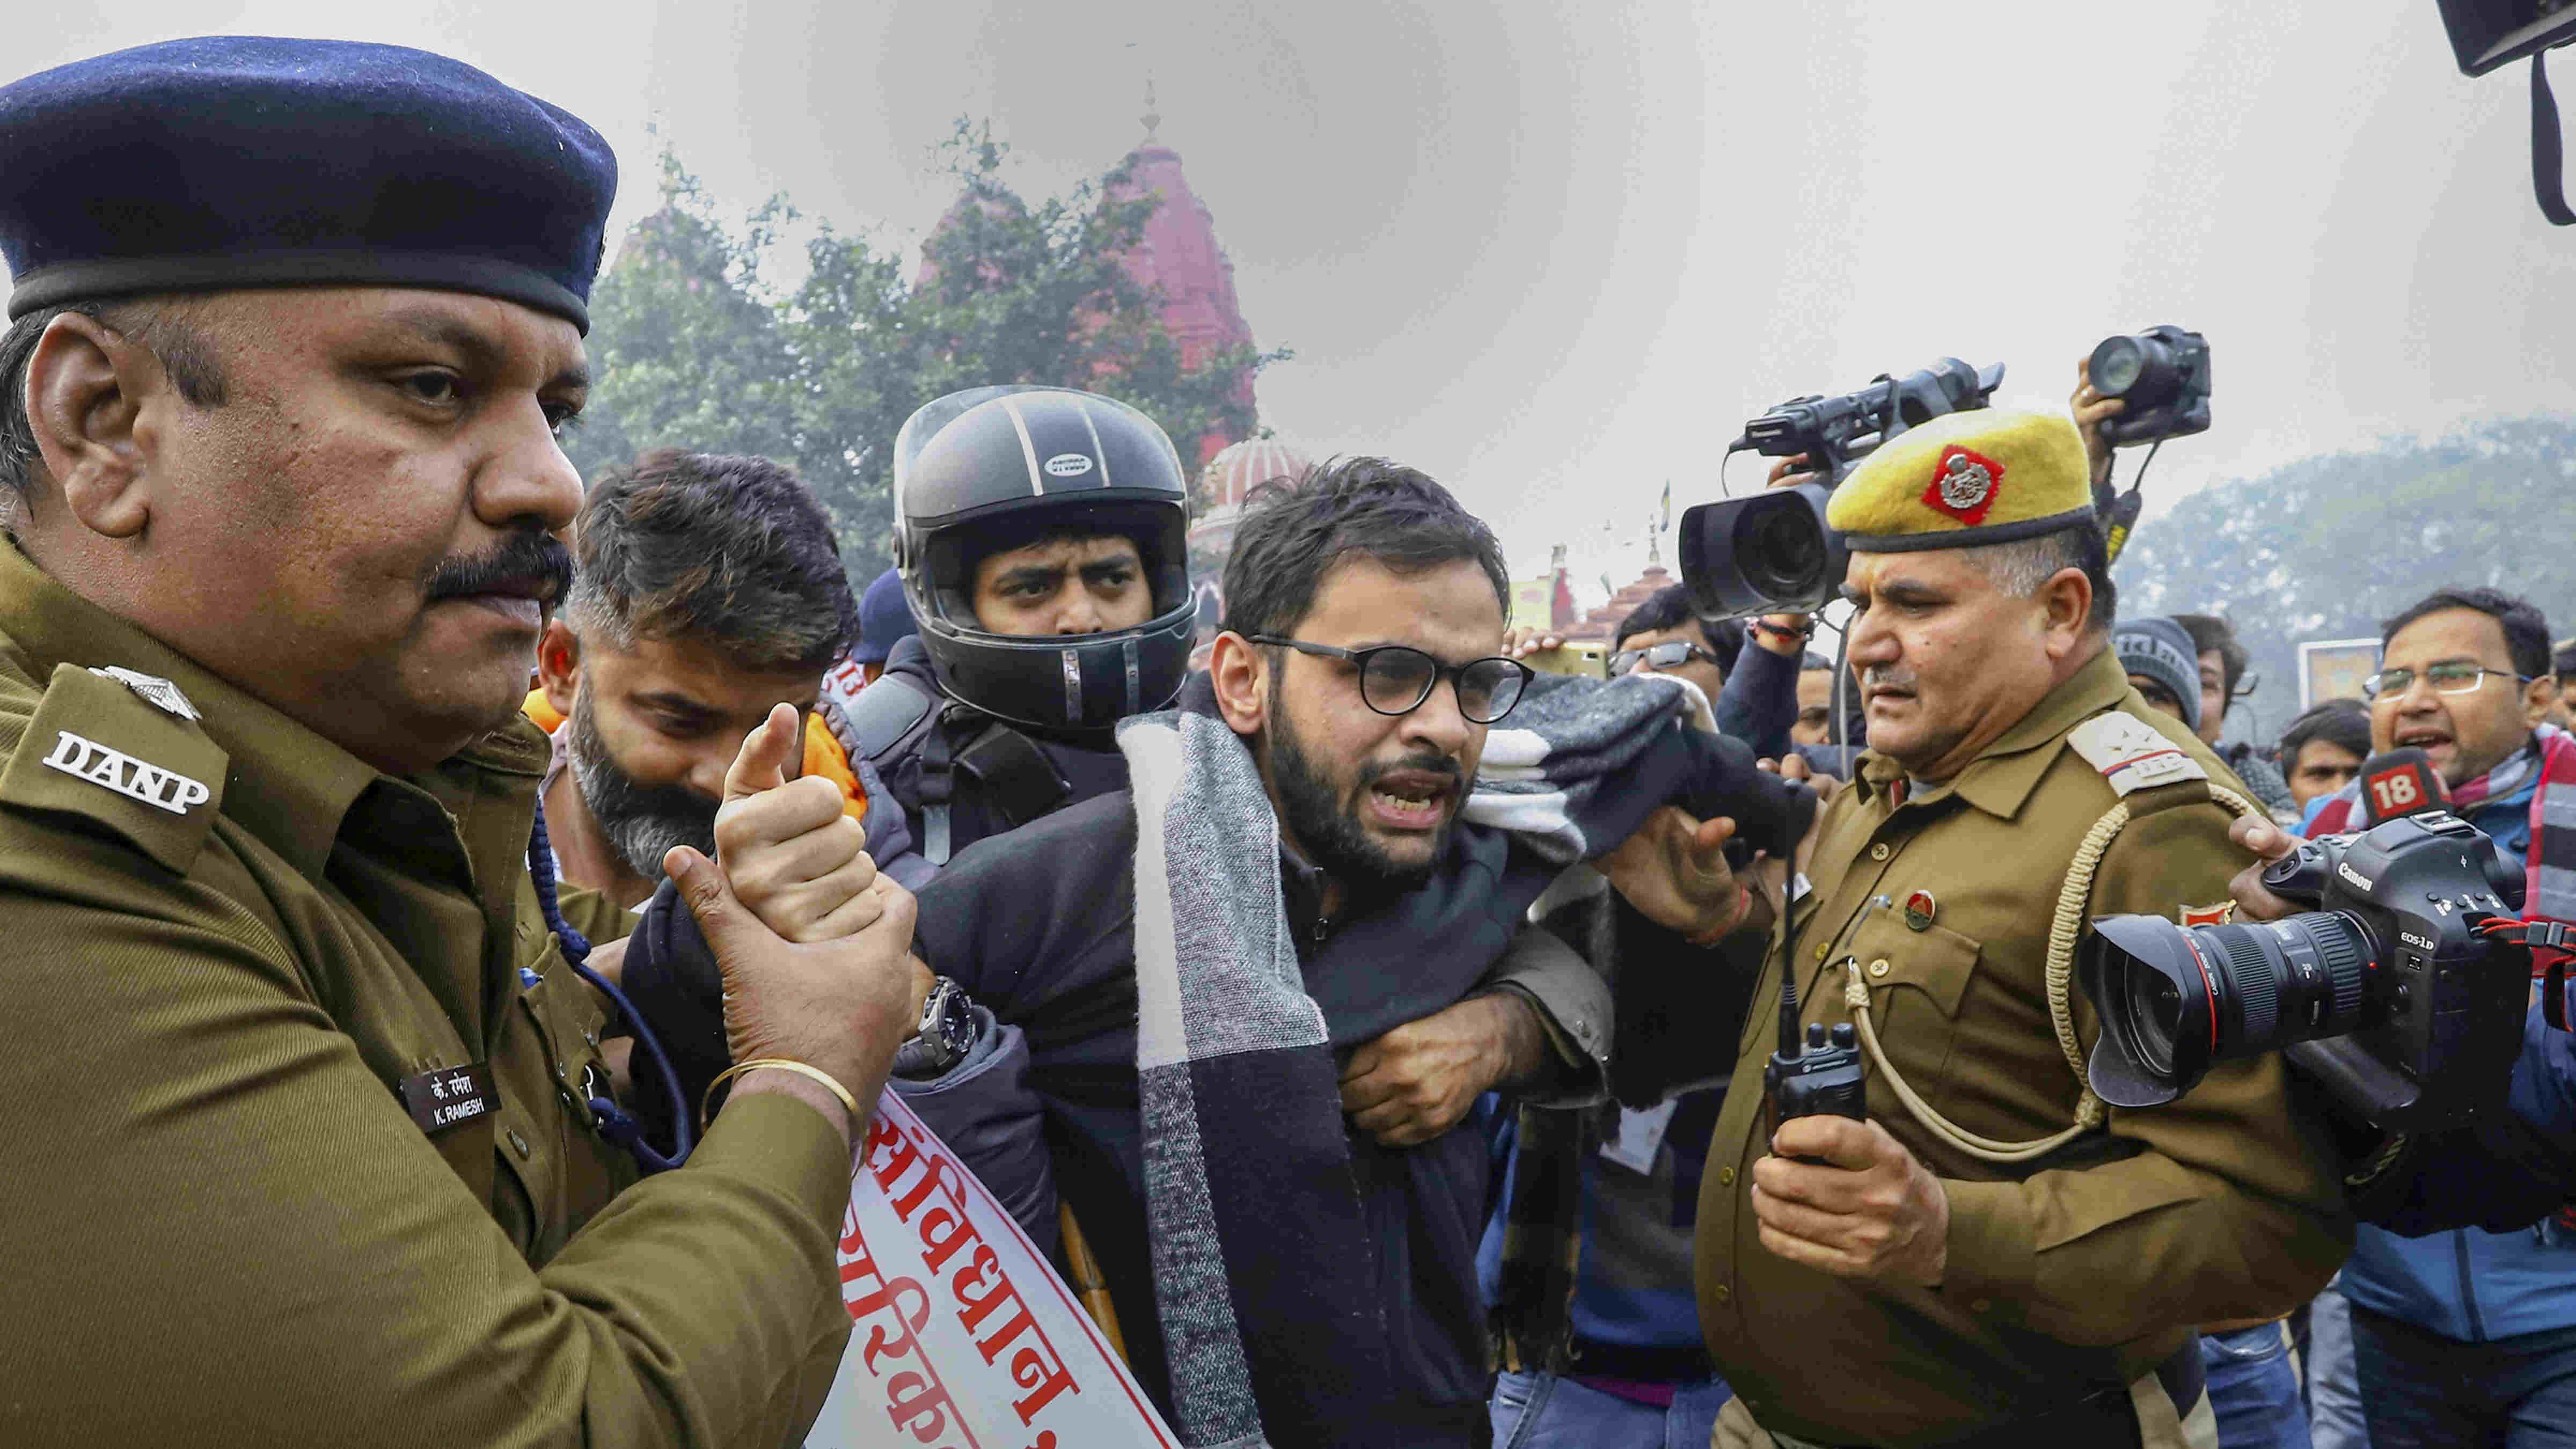 In this file photo dated Dec. 19, 2019, former JNU student and activist Umar Khalid is detained by police for defying prohibitory orders imposed by the Delhi Police in the area during an anti-Citizenship Act protest, at Red Fort, in New Delhi.